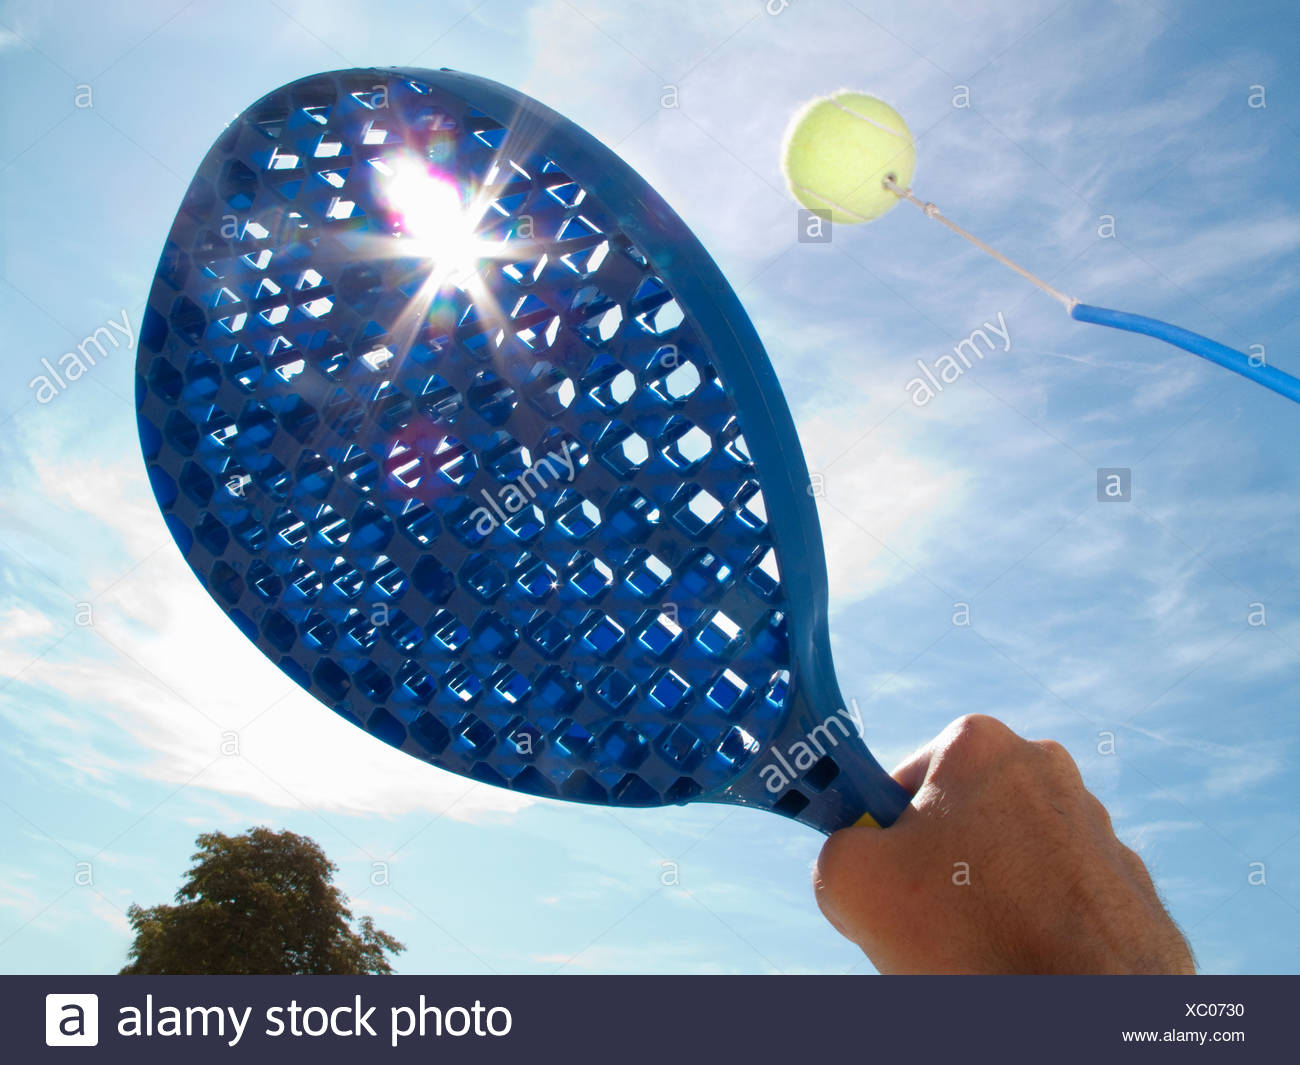 Sun shining behind paddle hitting tennis ball - Stock Image